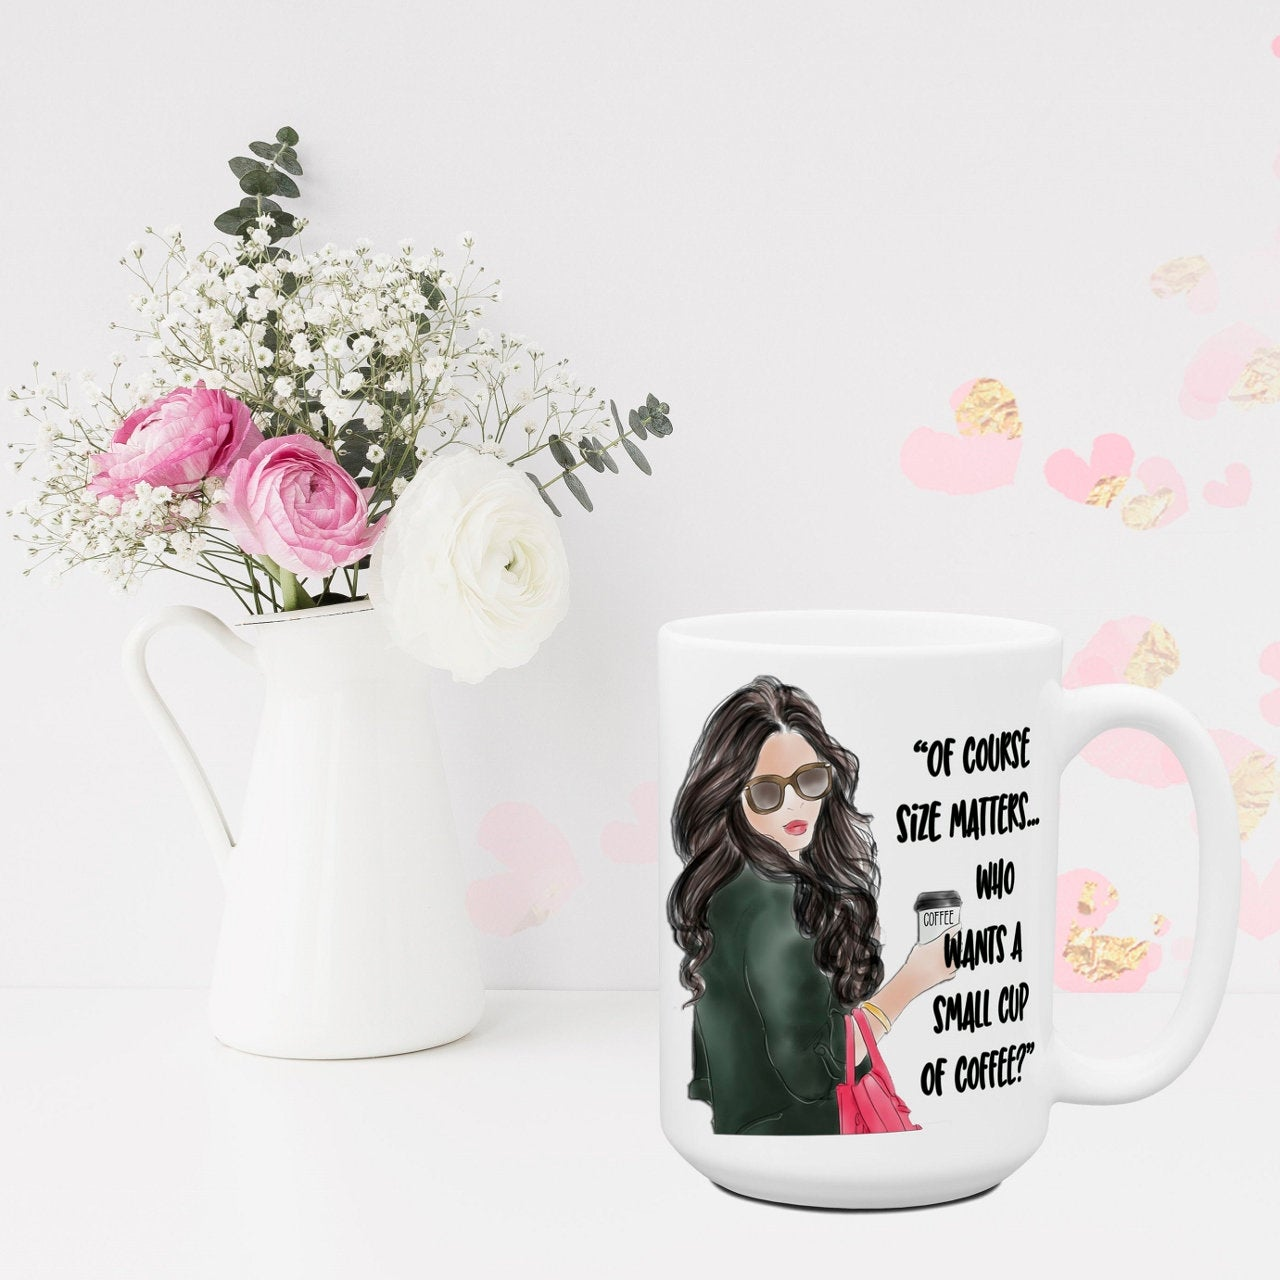 Of Course Size Matters Funny Mugs for Women Sassy Attitude Office Coworker Cup